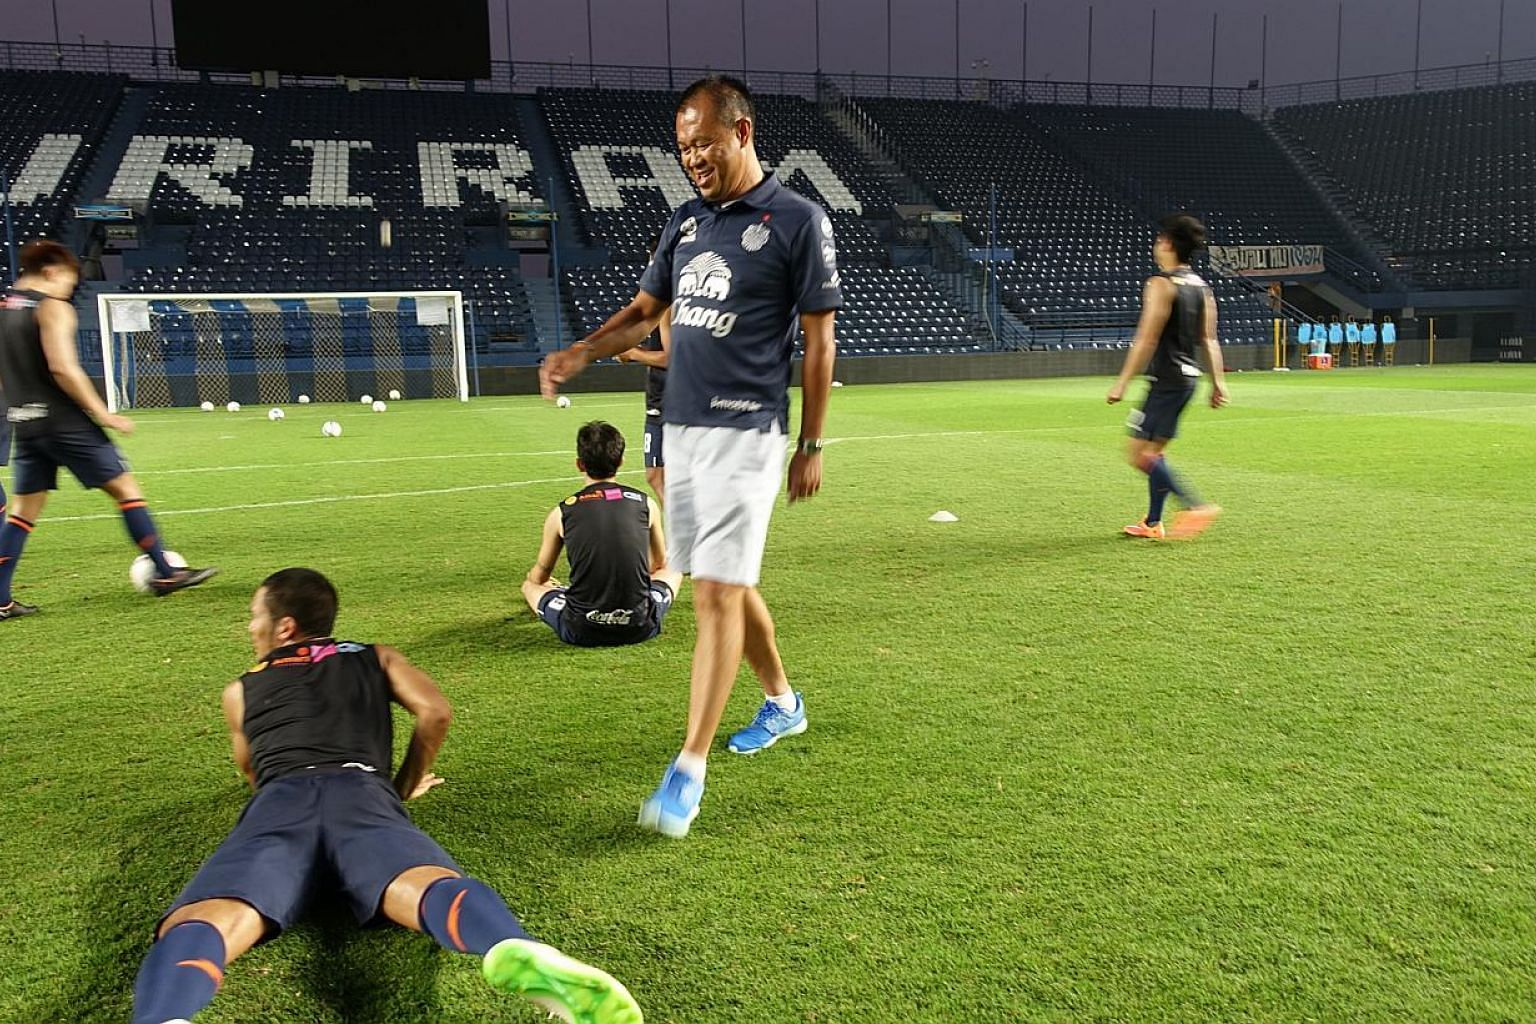 Newin Chidchob (in blue shoes) with Buriram United footballers during training. -- ST PHOTO: TAN HUI YEE